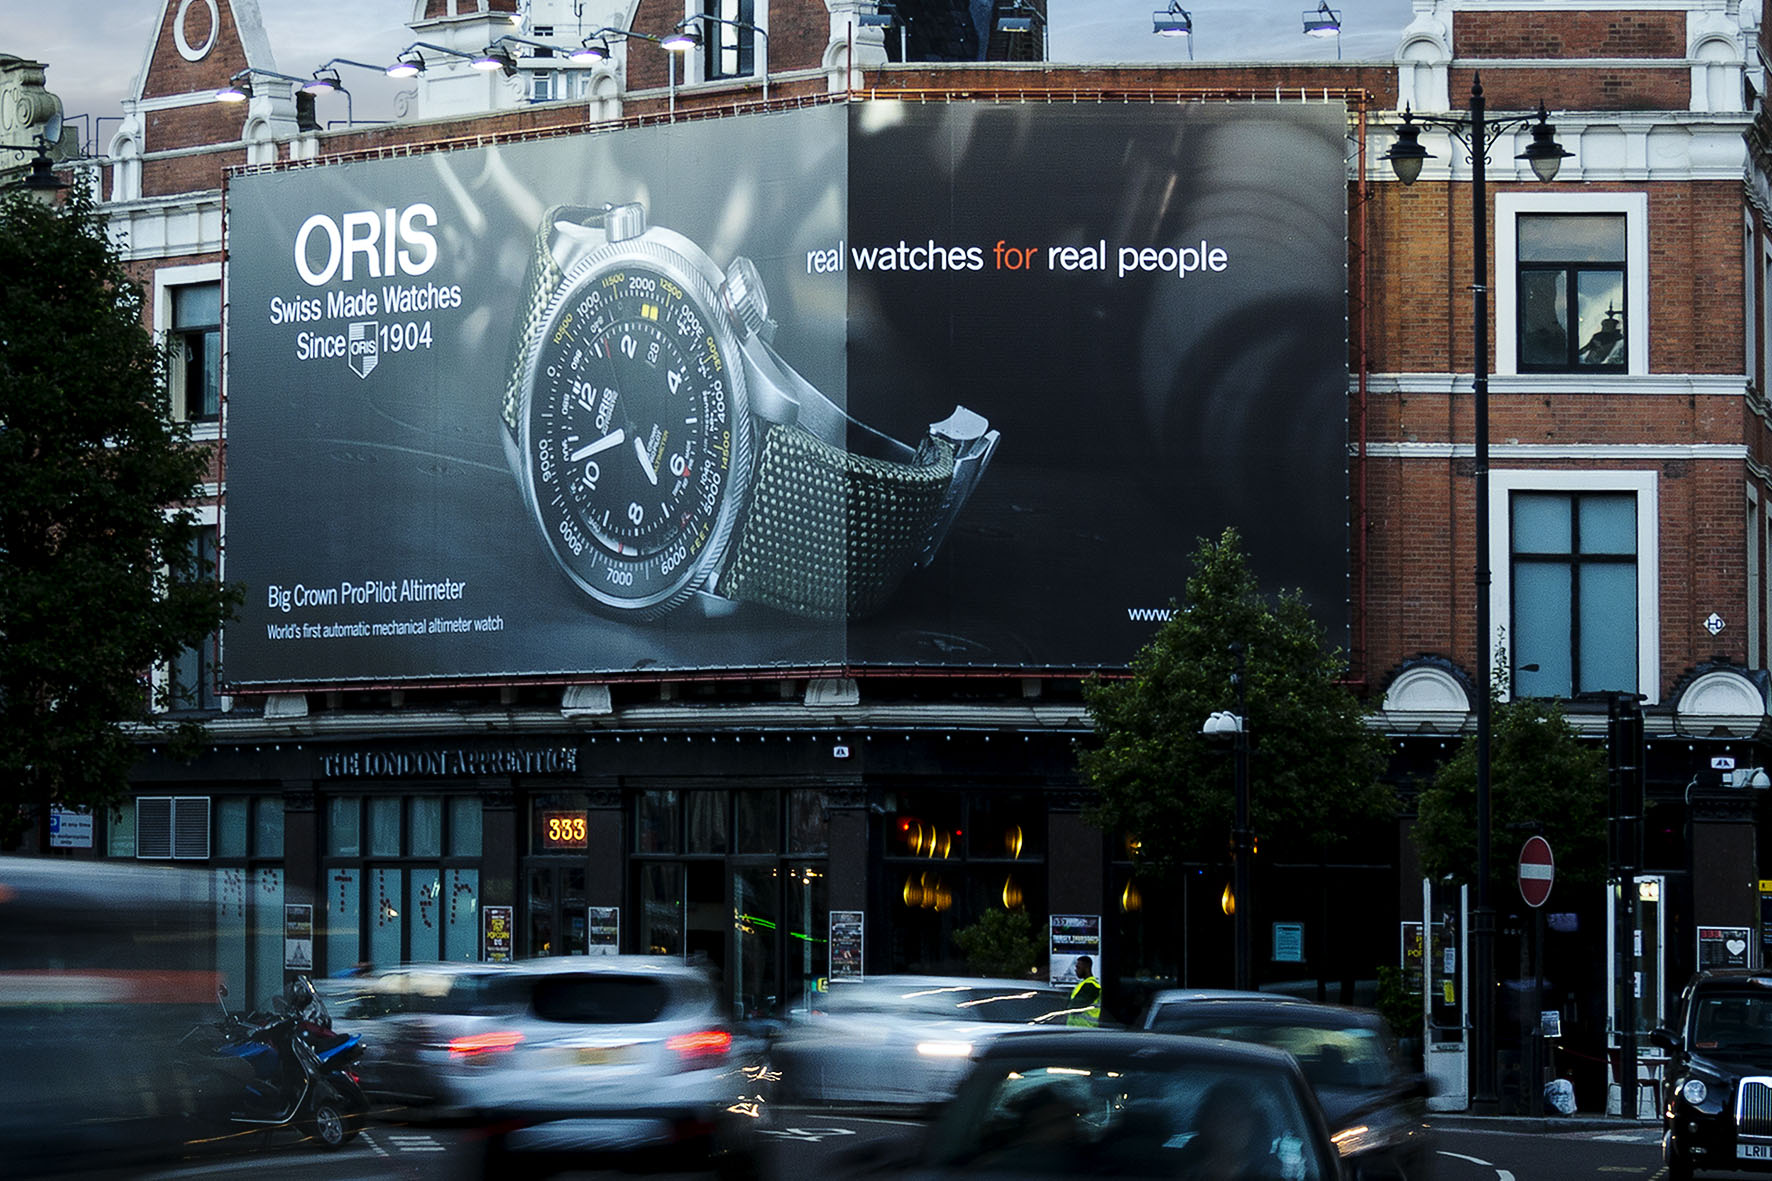 ORIS: MAKING TIME - Jede Minute zählt